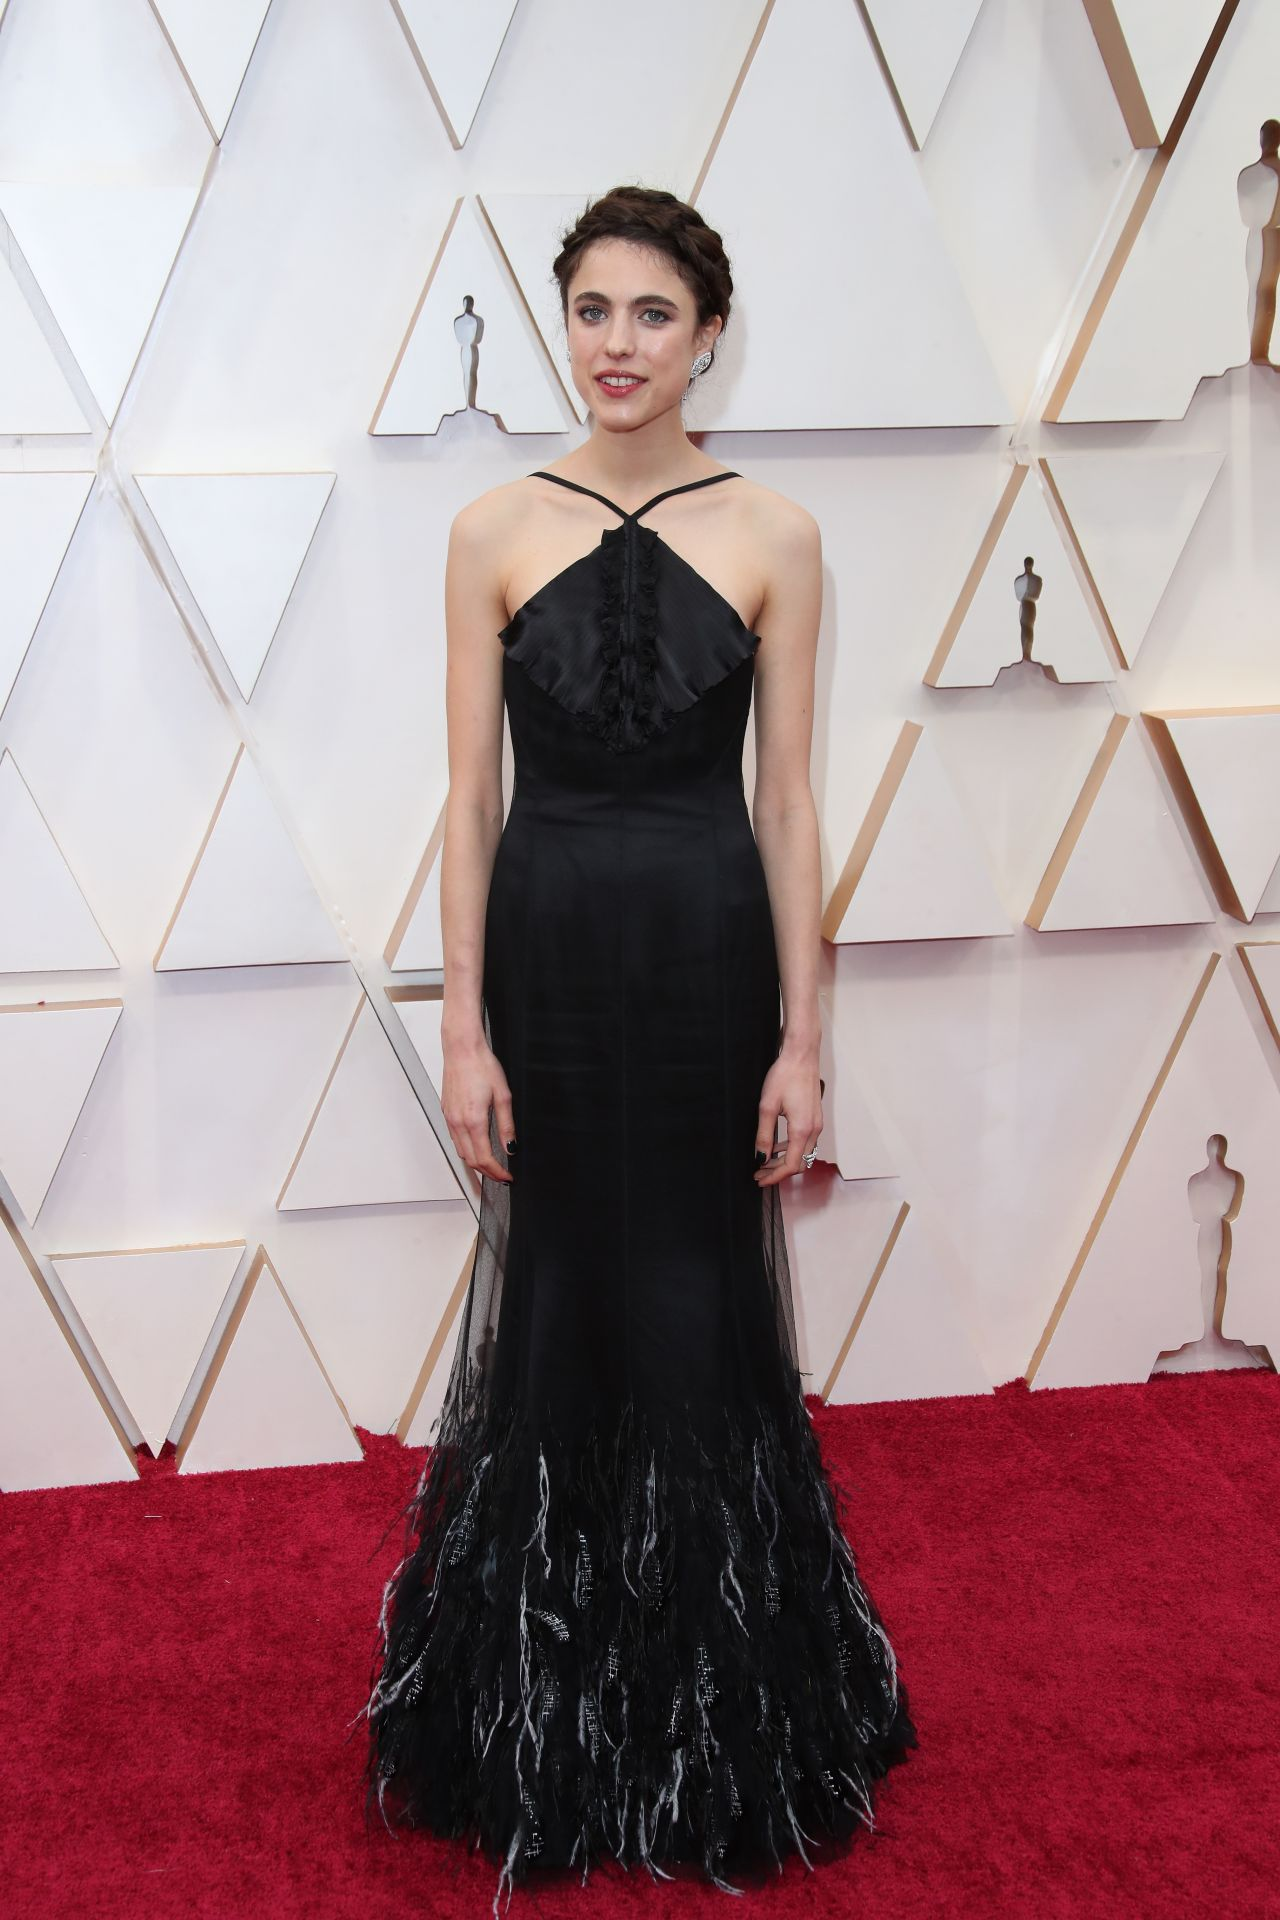 margaret-qualley-in-chanel-oscars-2020